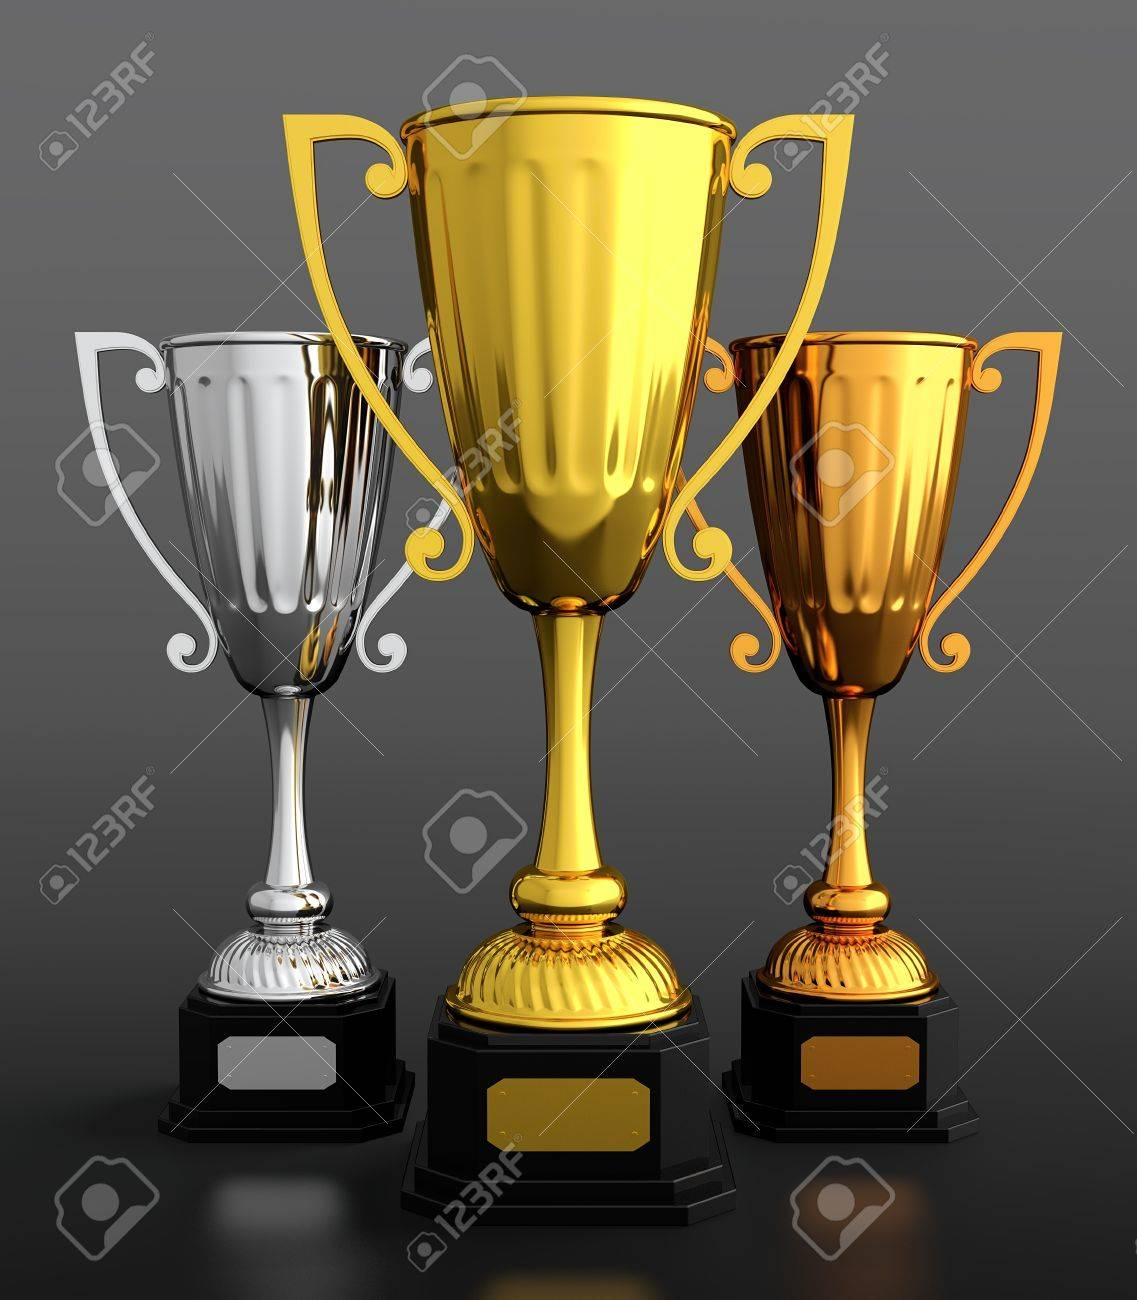 3D Render Of Gold Silver And Bronze Trophy Cups On Black Background Stock Photo